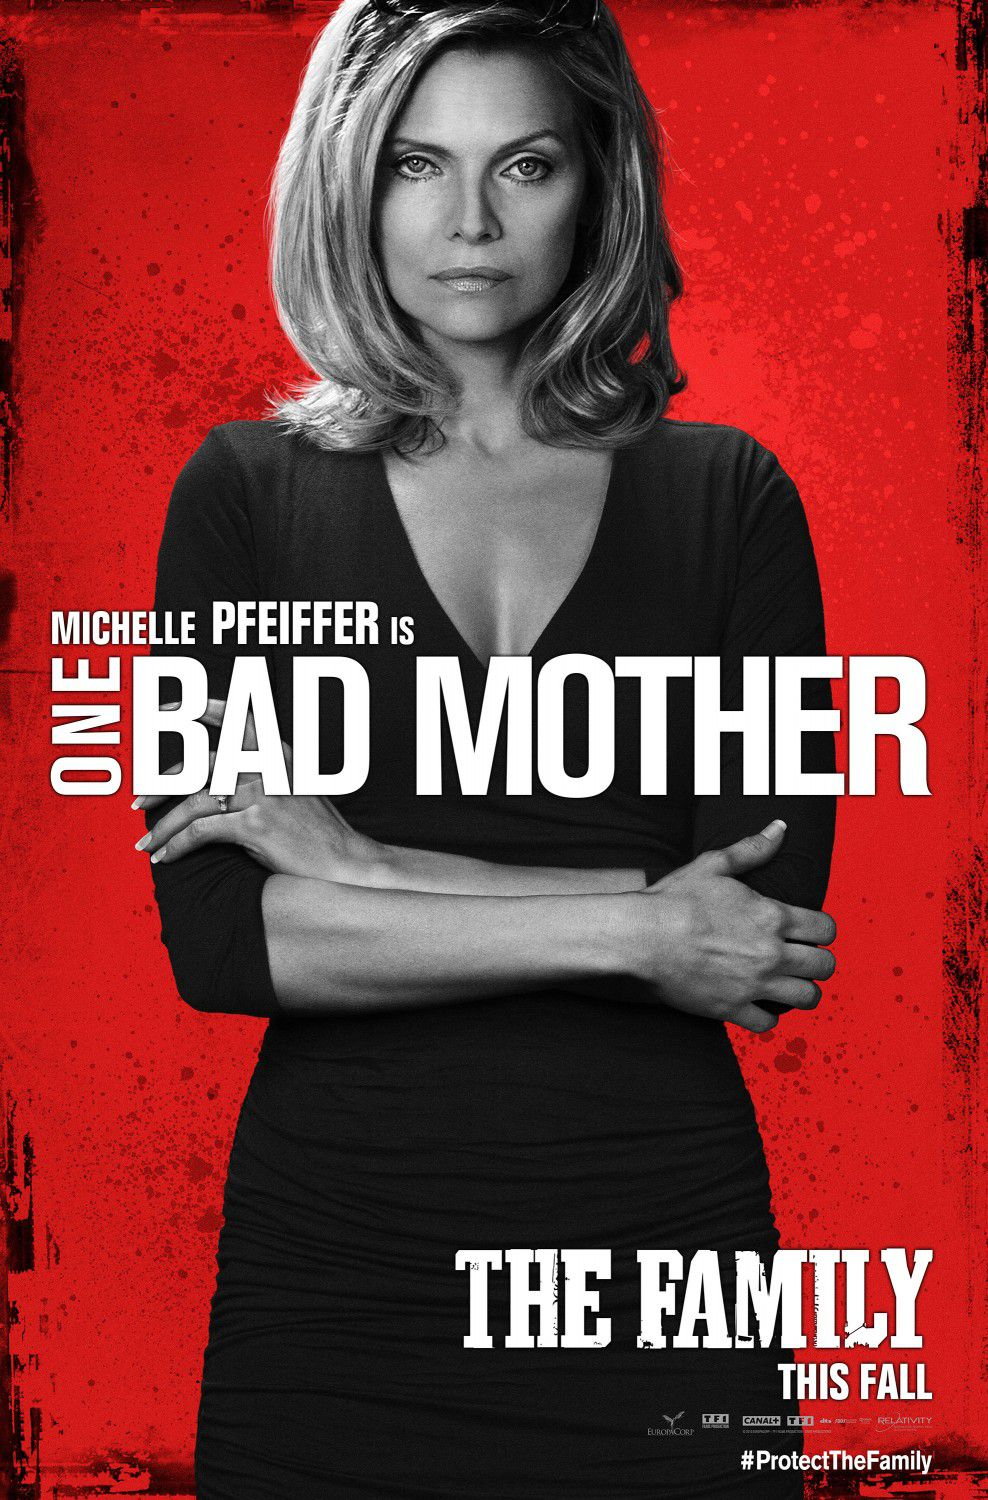 Cose nostre - Malavita - the Family - Michelle Pfeiffer - one Bad Mother poster